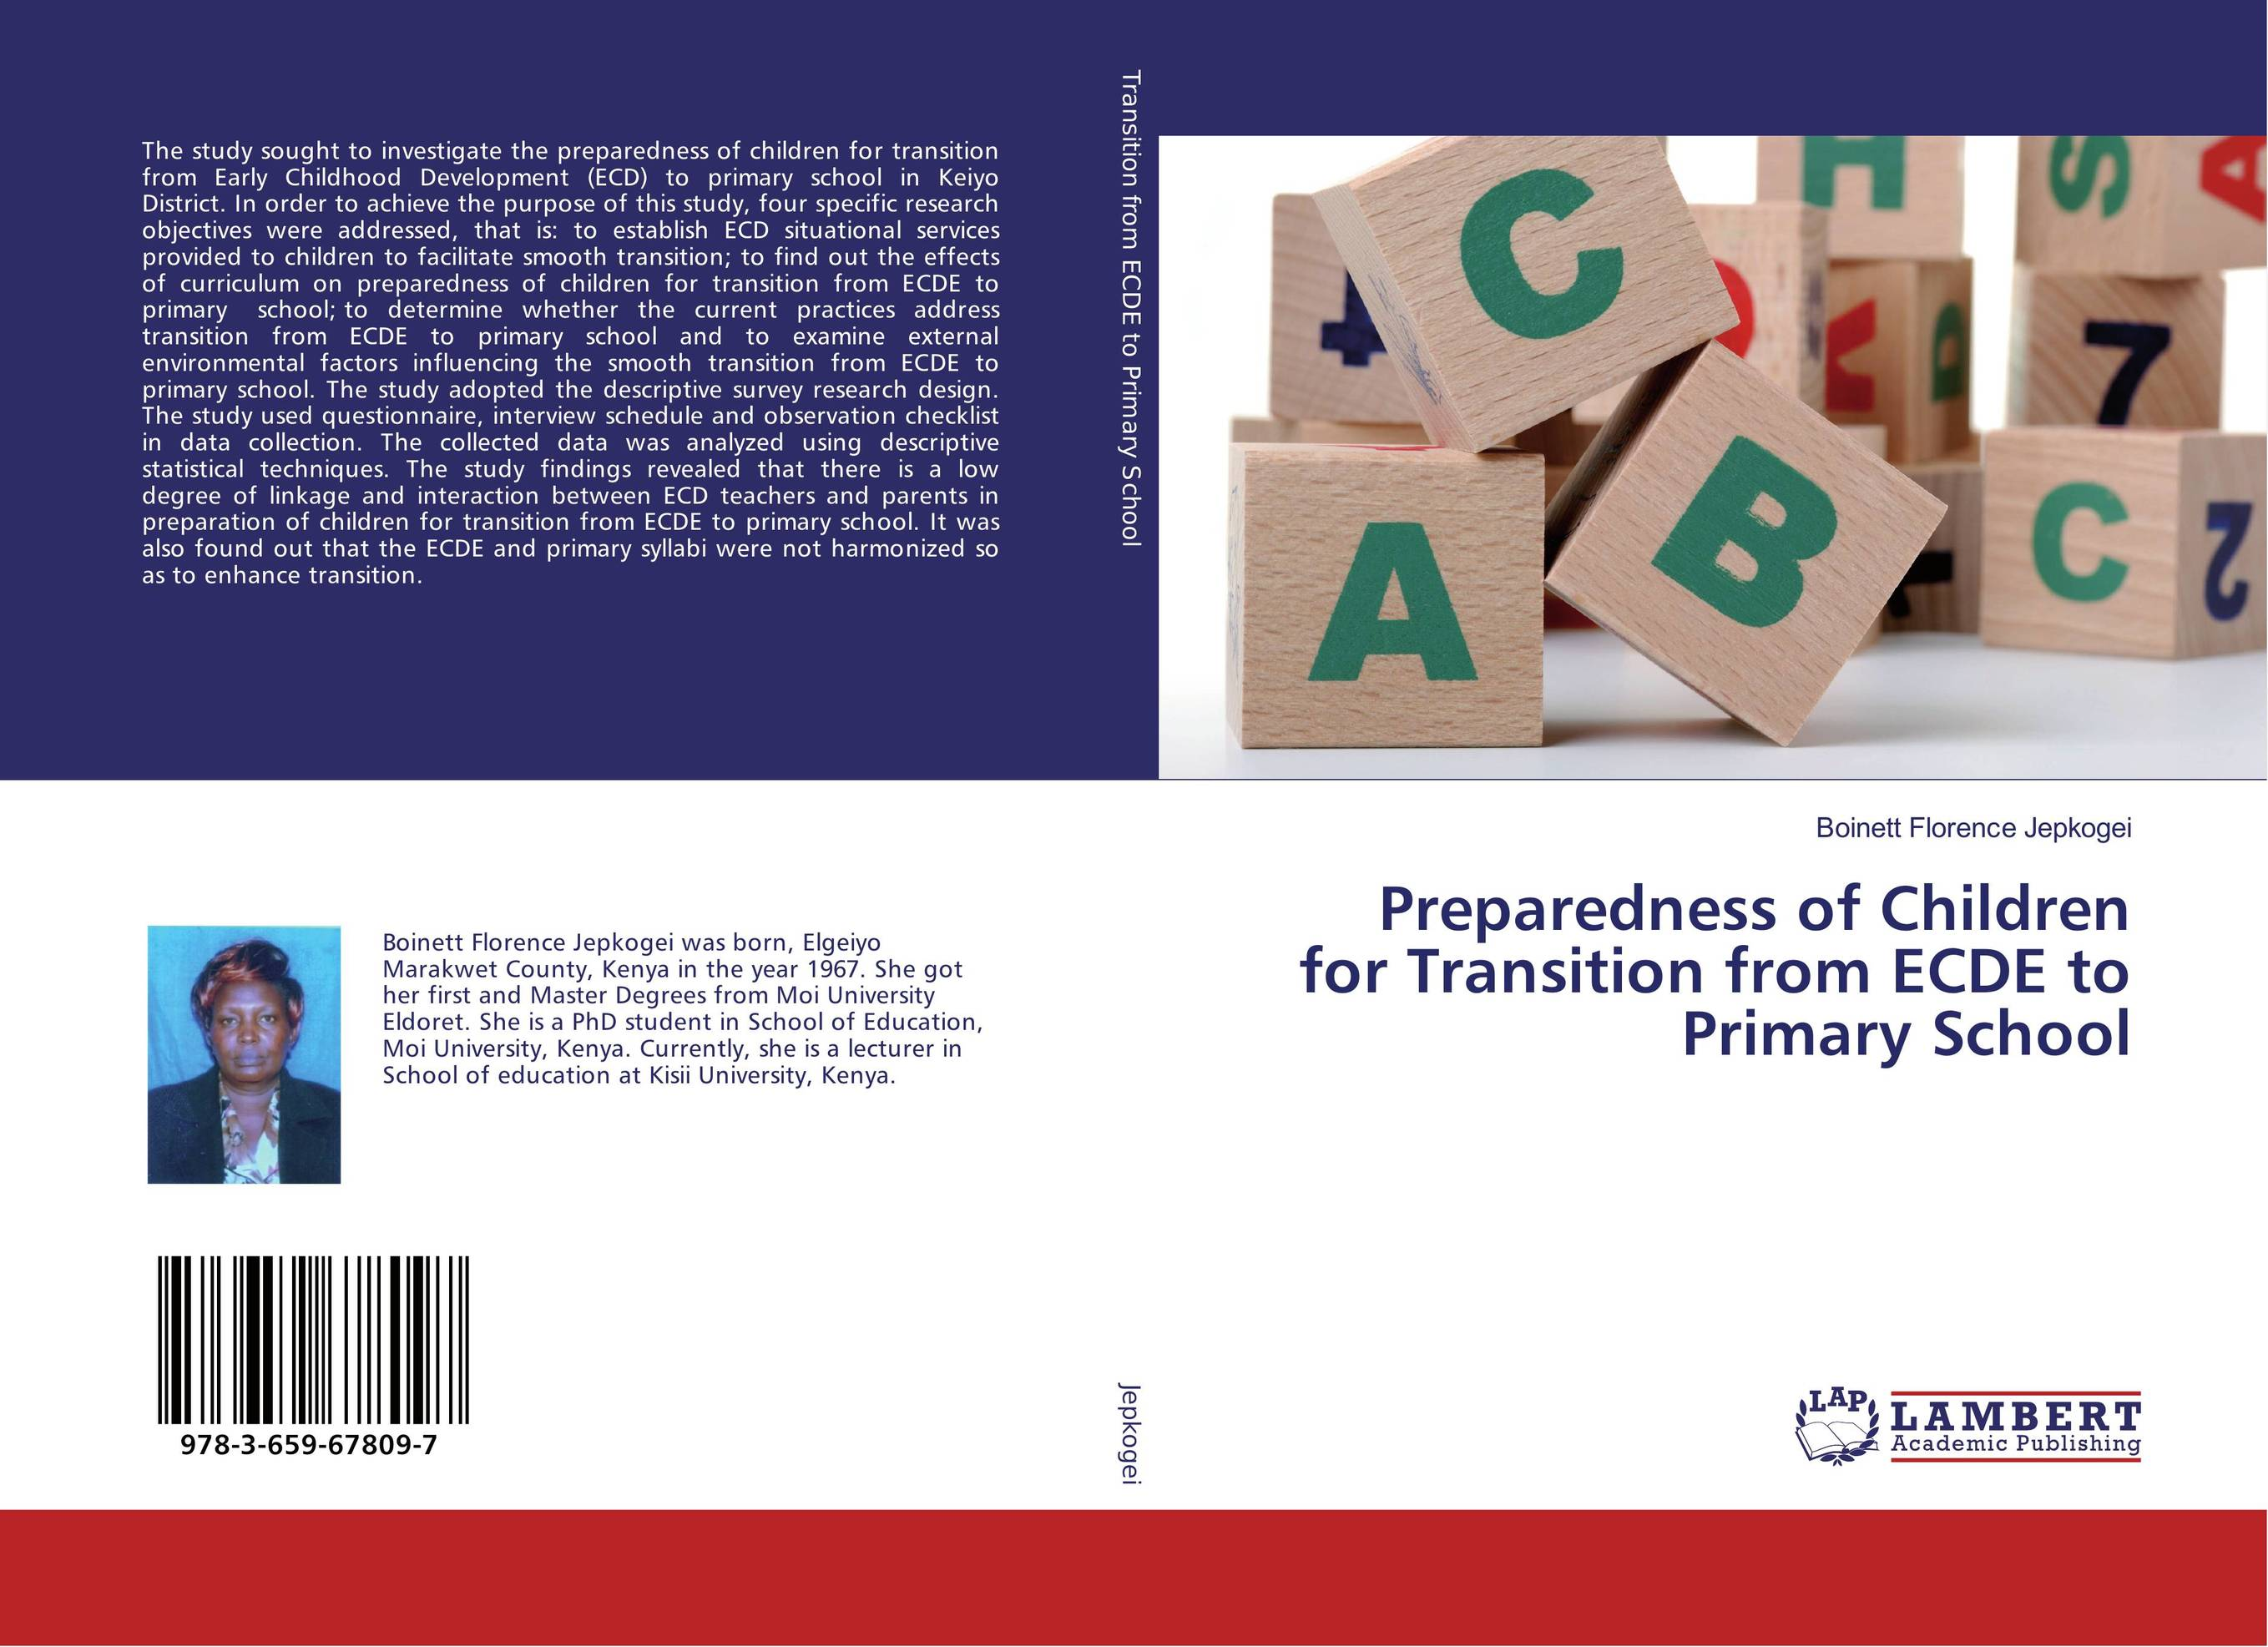 Preparedness of Children for Transition from ECDE to Primary School alan roxburgh missional map making skills for leading in times of transition